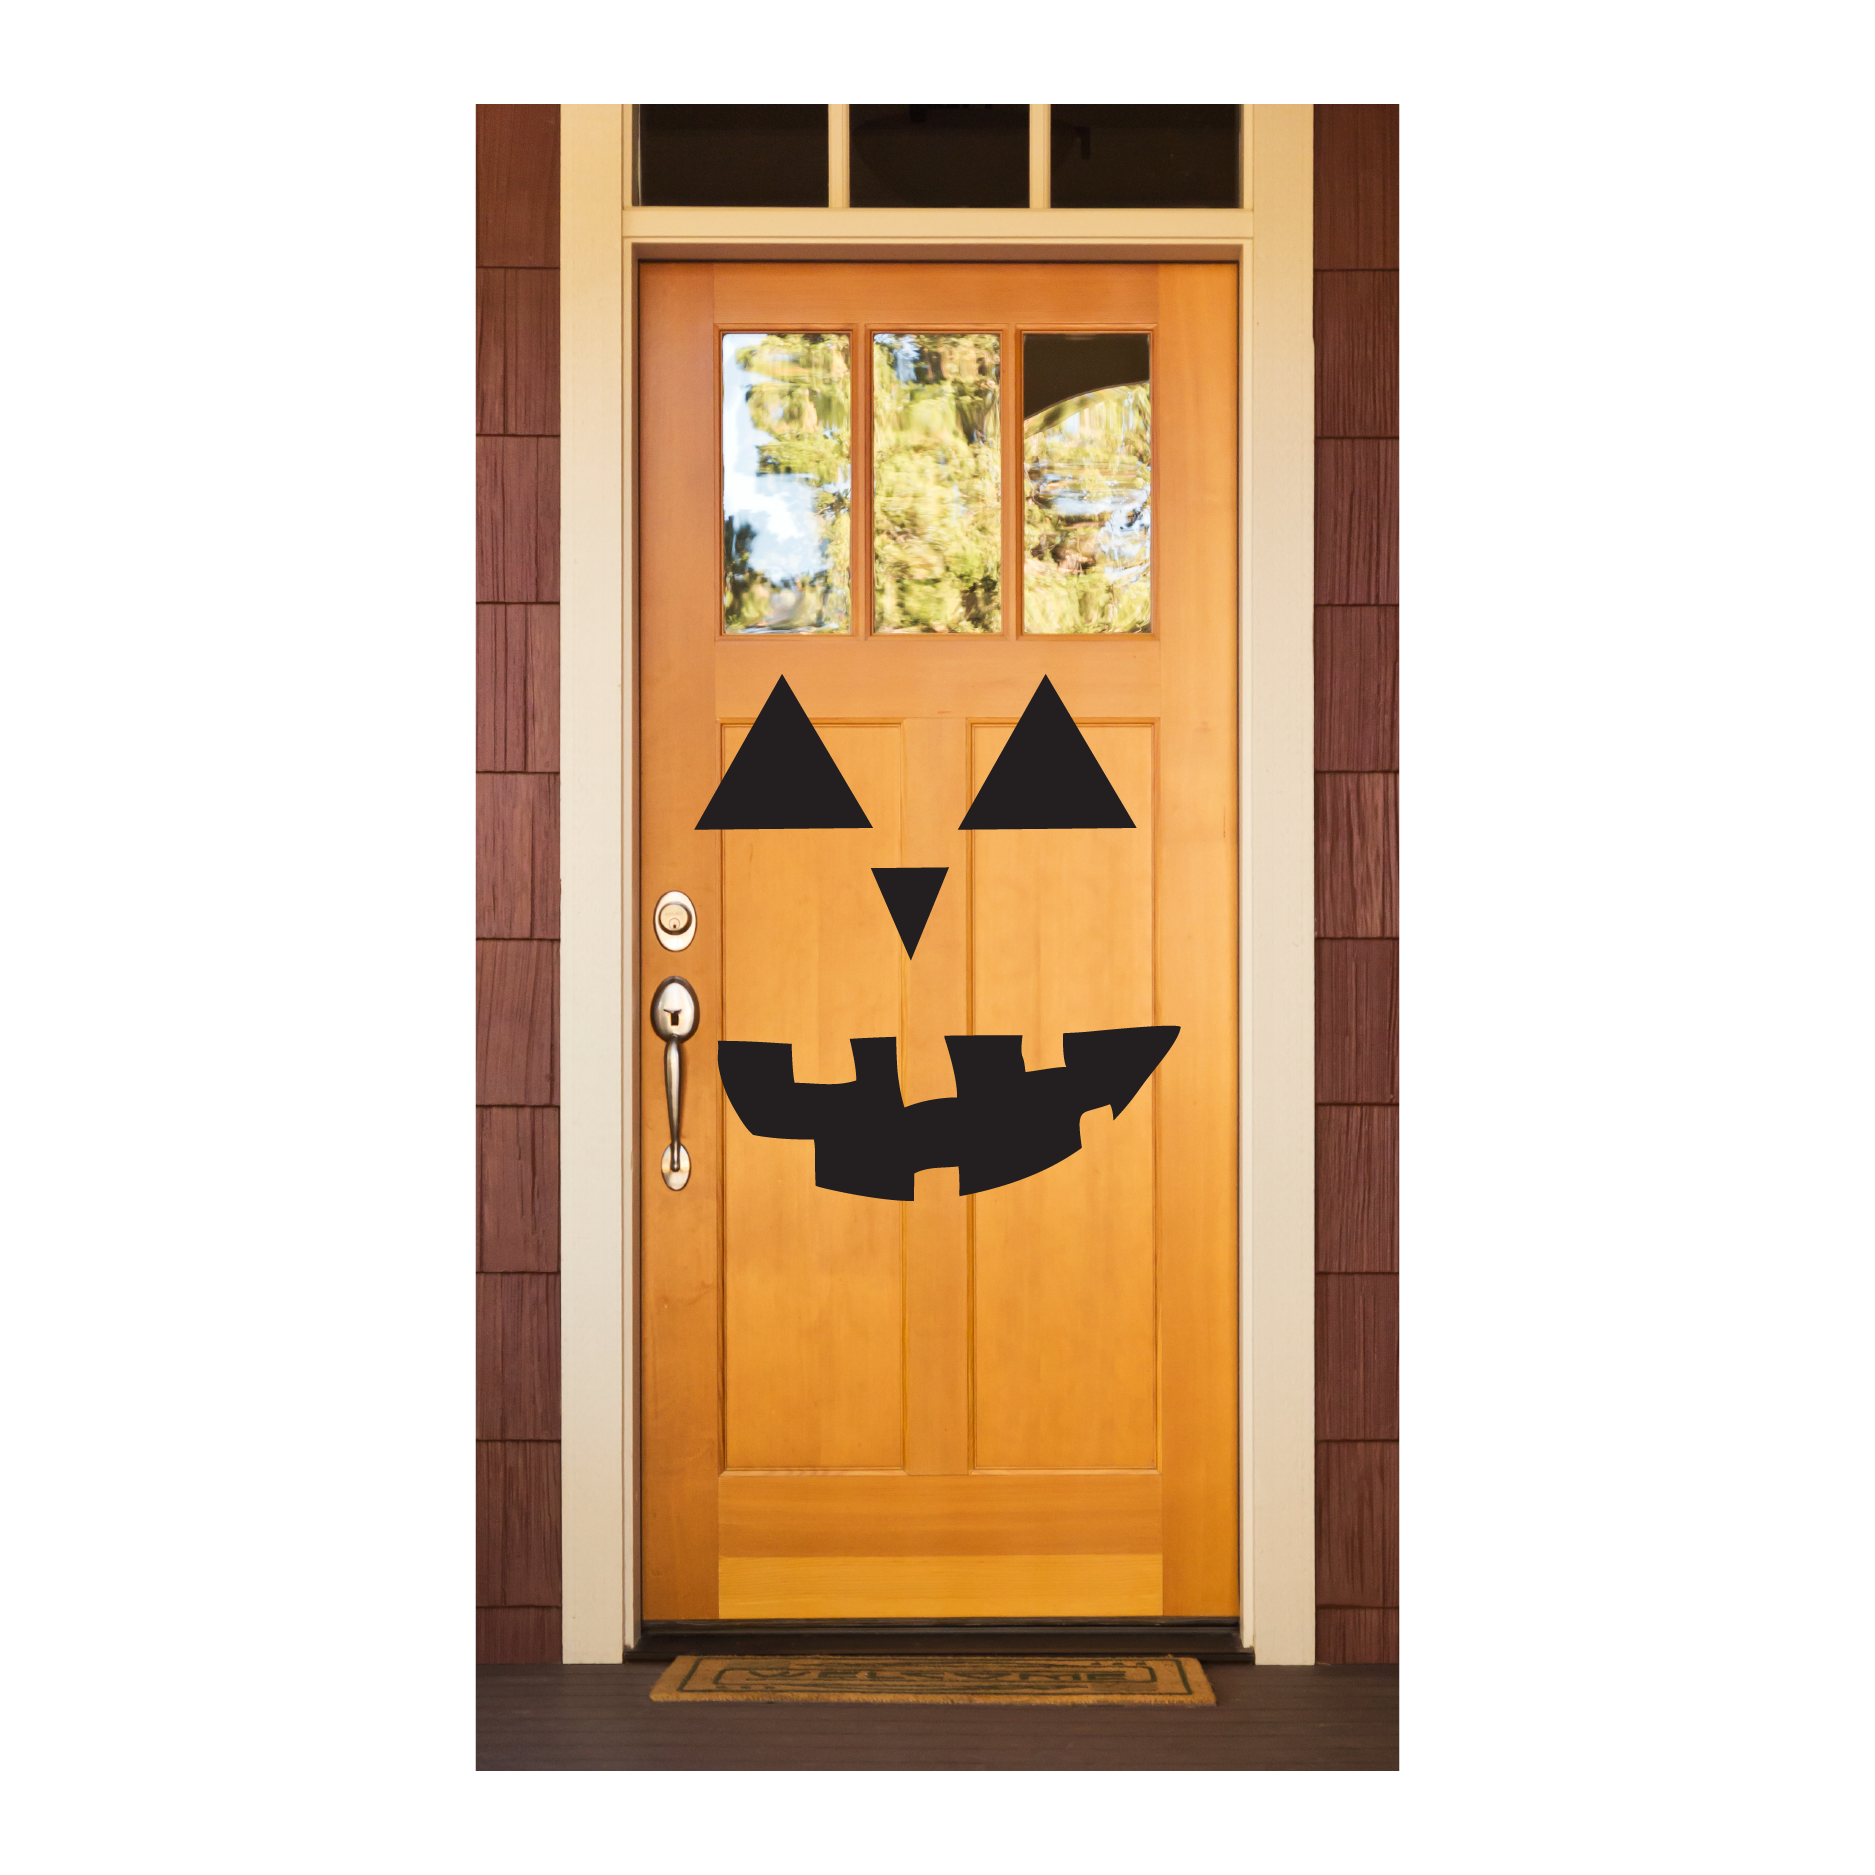 Jack ou0027 lantern Face Door  sc 1 st  WallQuotes.com & Jack Ou0027 Lantern Face Wall Quotes™ Decal | WallQuotes.com